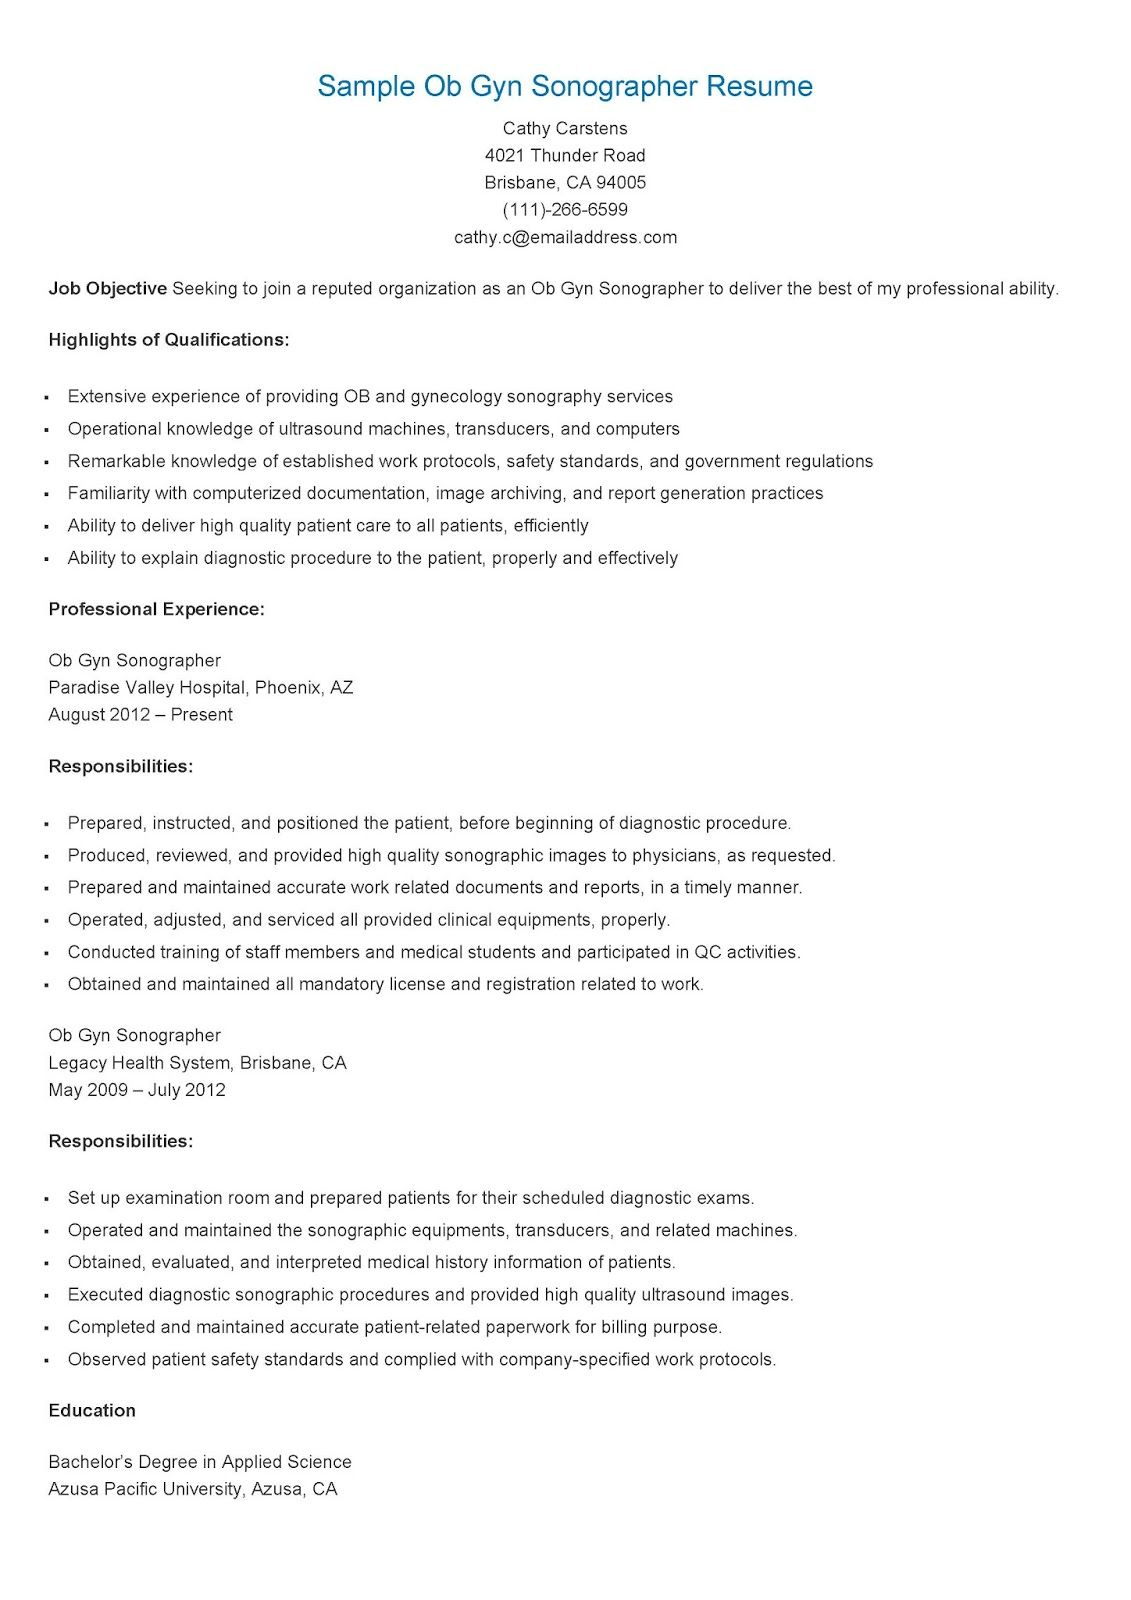 Sample ob gyn sonographer resume technician resume for Cover letter for ob gyn position